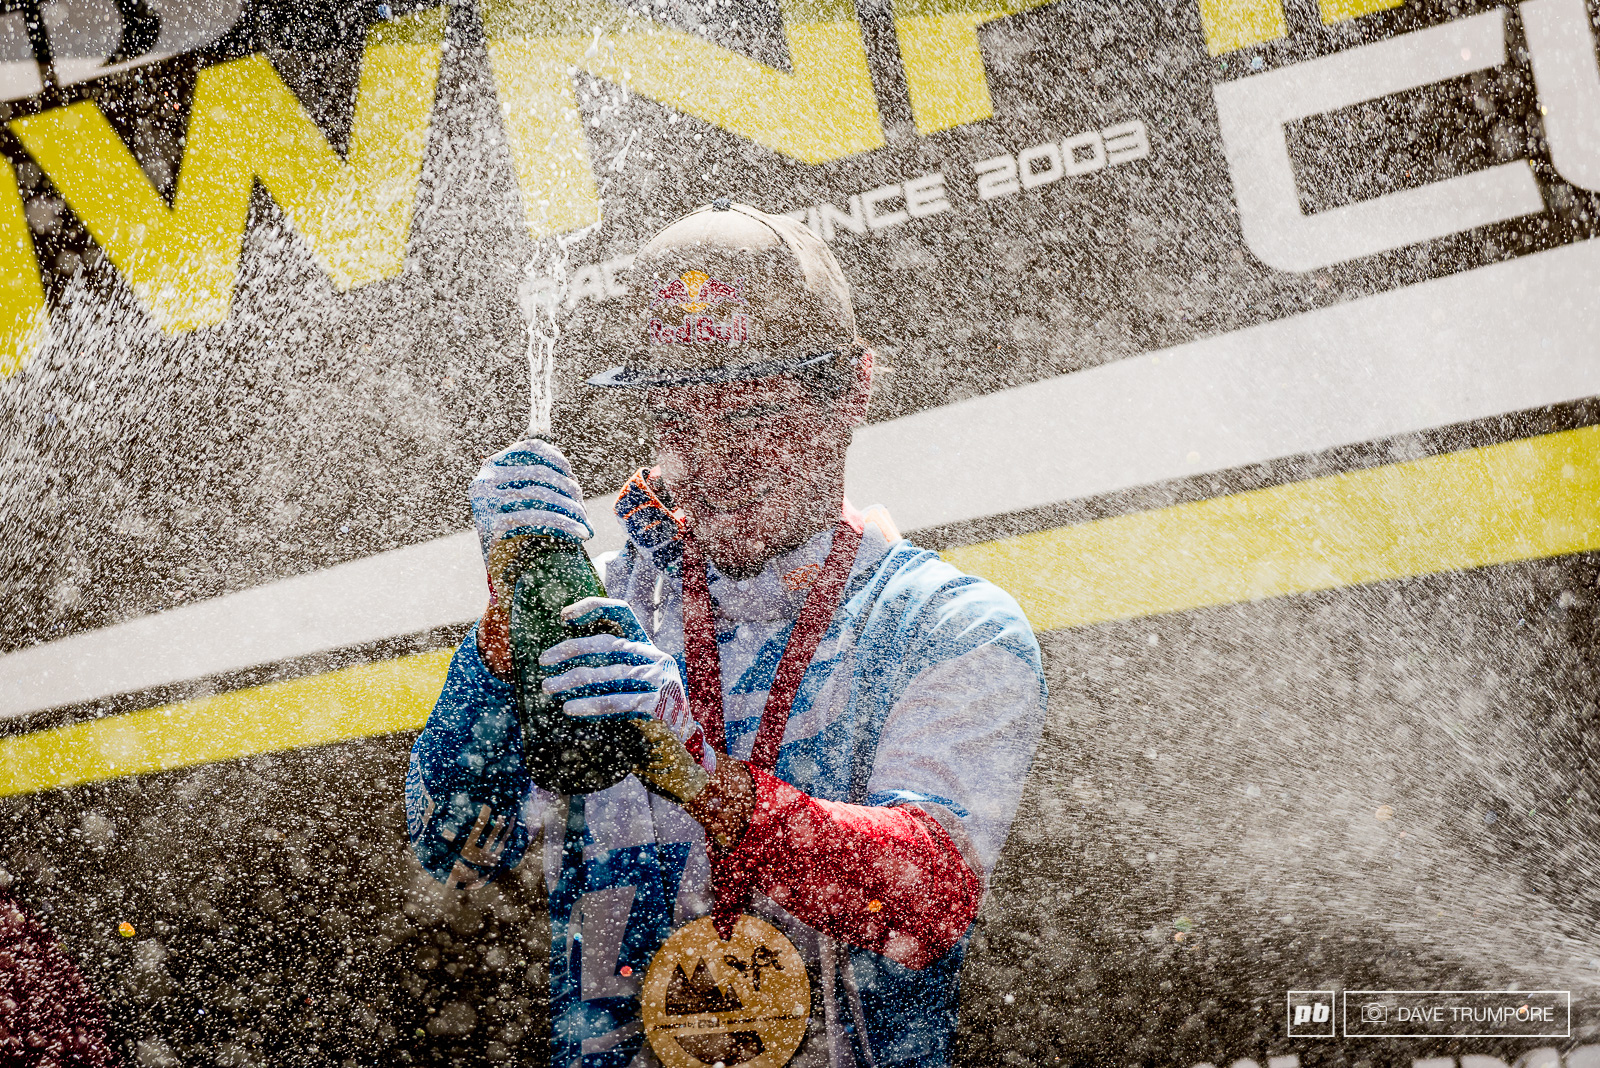 With scorching temps all week what better way to cool down than with an ice cold shower of champagne in Crankworx L2A.